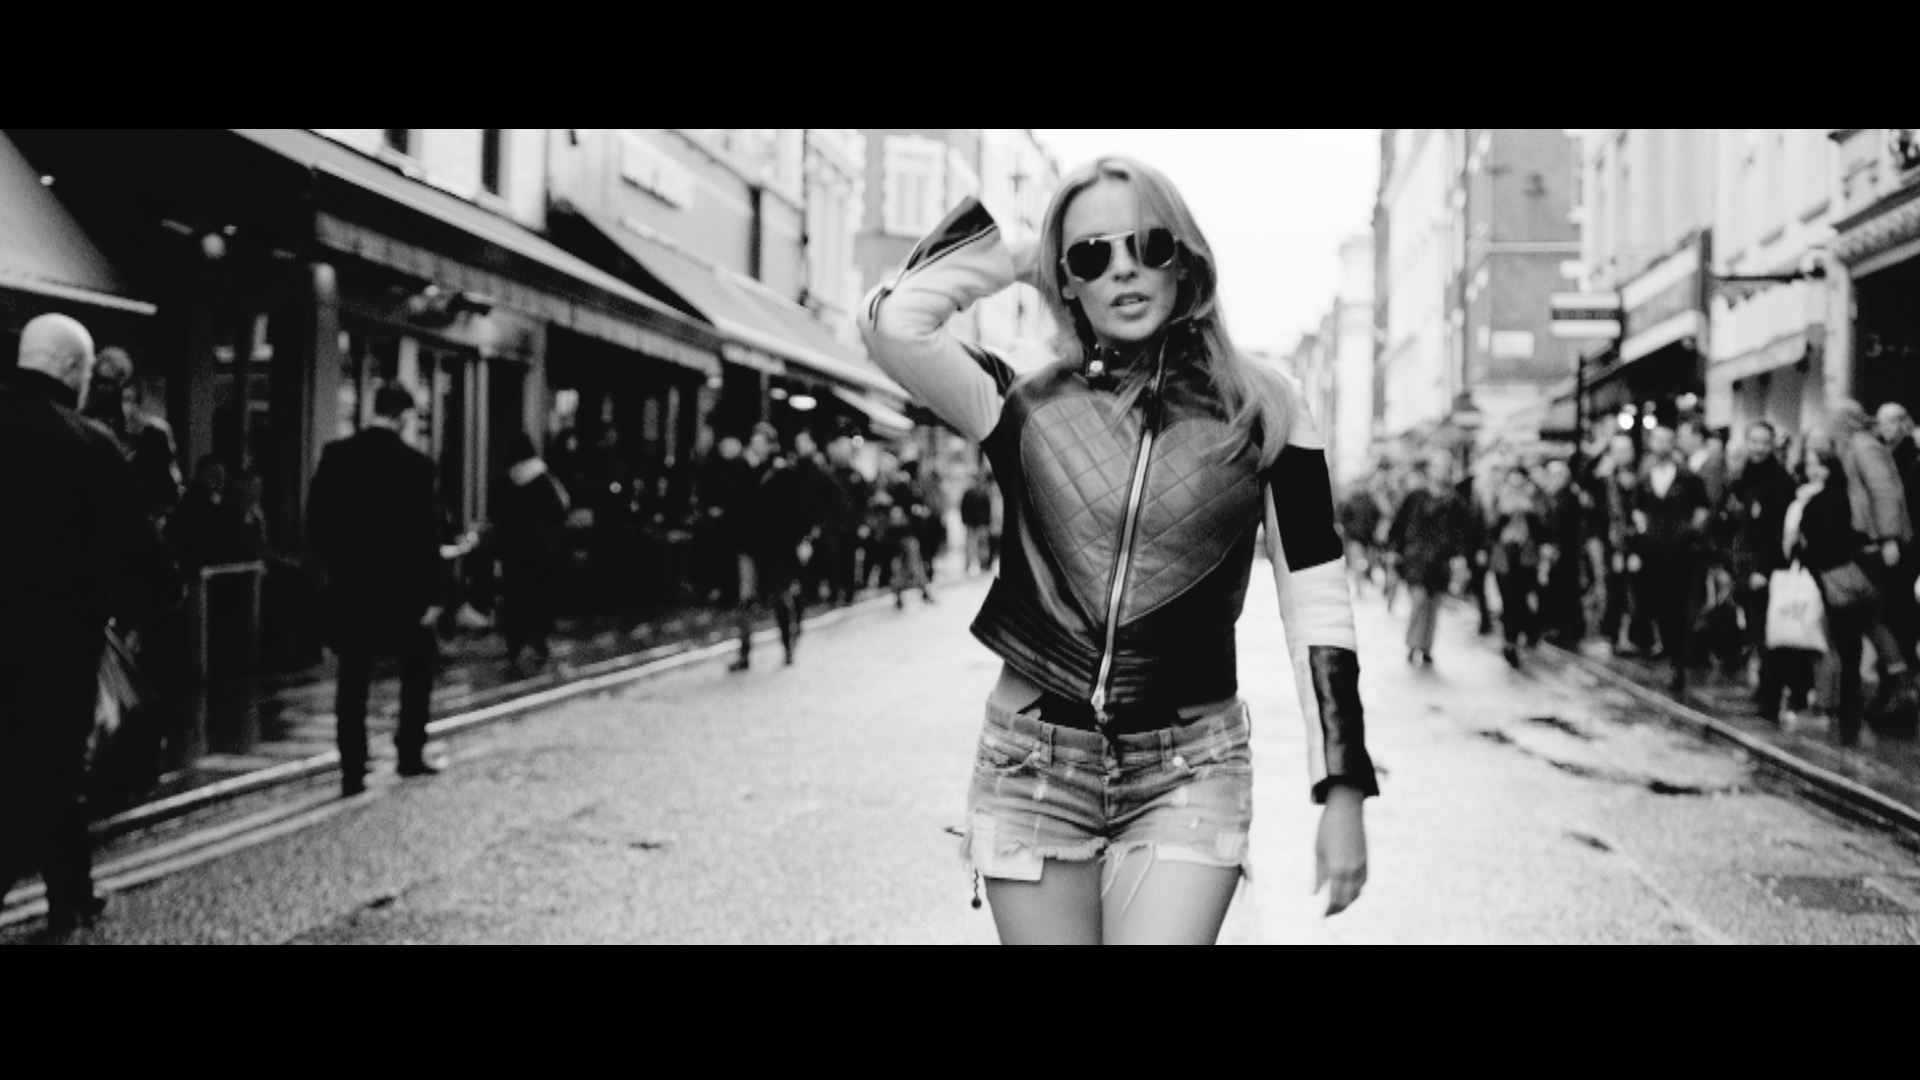 5581e3116f Sunglasses kylie minogue white wallpaper jpg 1920x1080 Sunglasses kylie  minogue white wallpaper